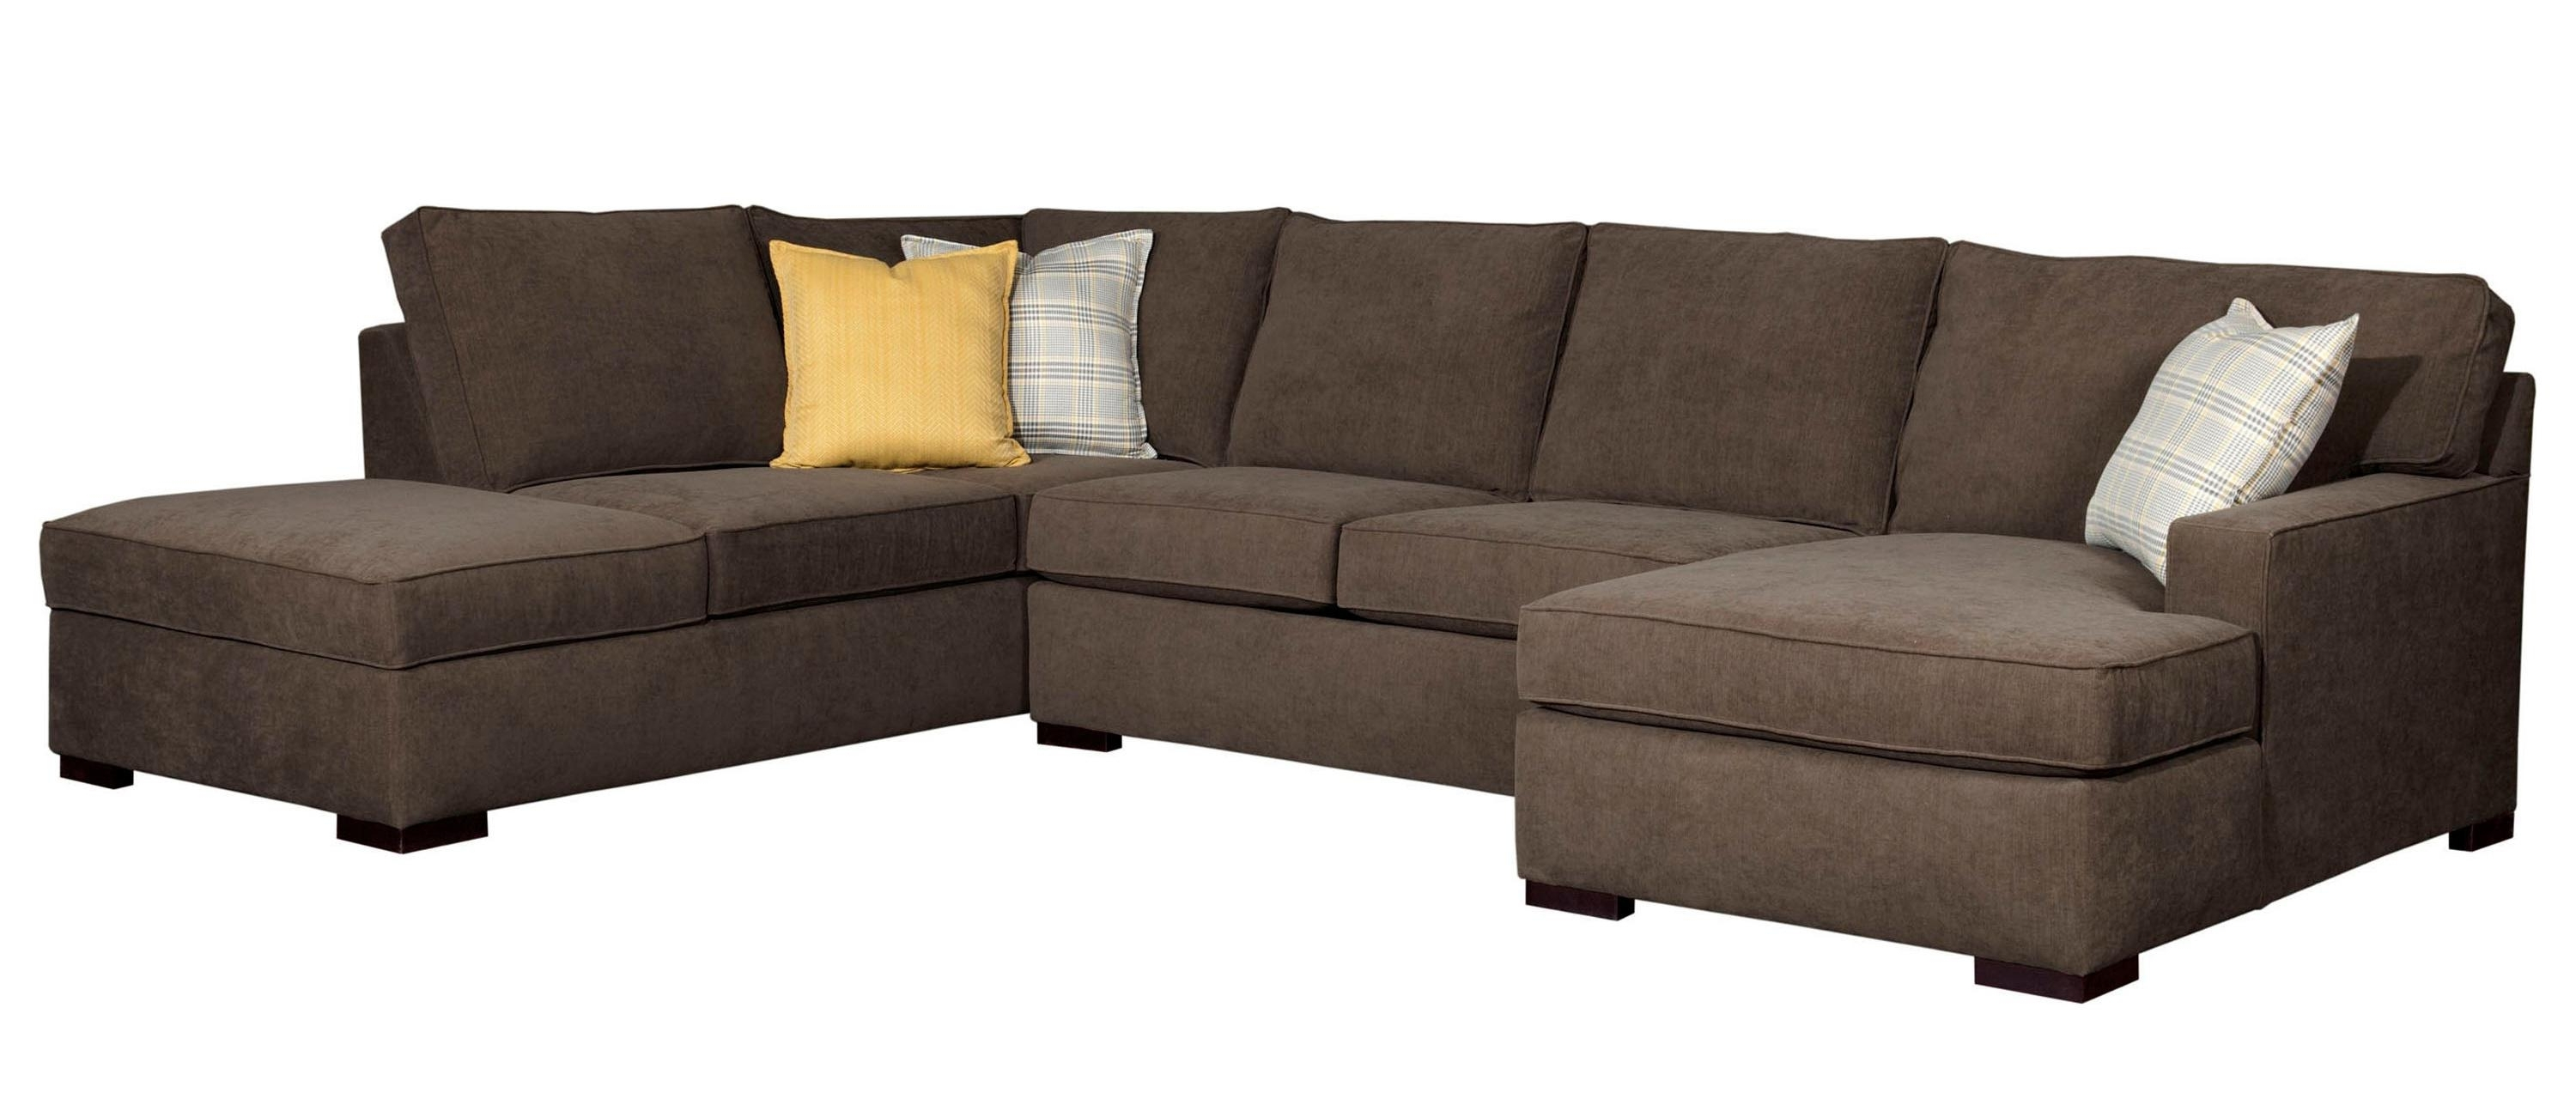 Fashionable Broyhill Furniture Raphael Contemporary Sectional Sofa With Laf Regarding Sam Levitz Sectional Sofas (View 3 of 15)